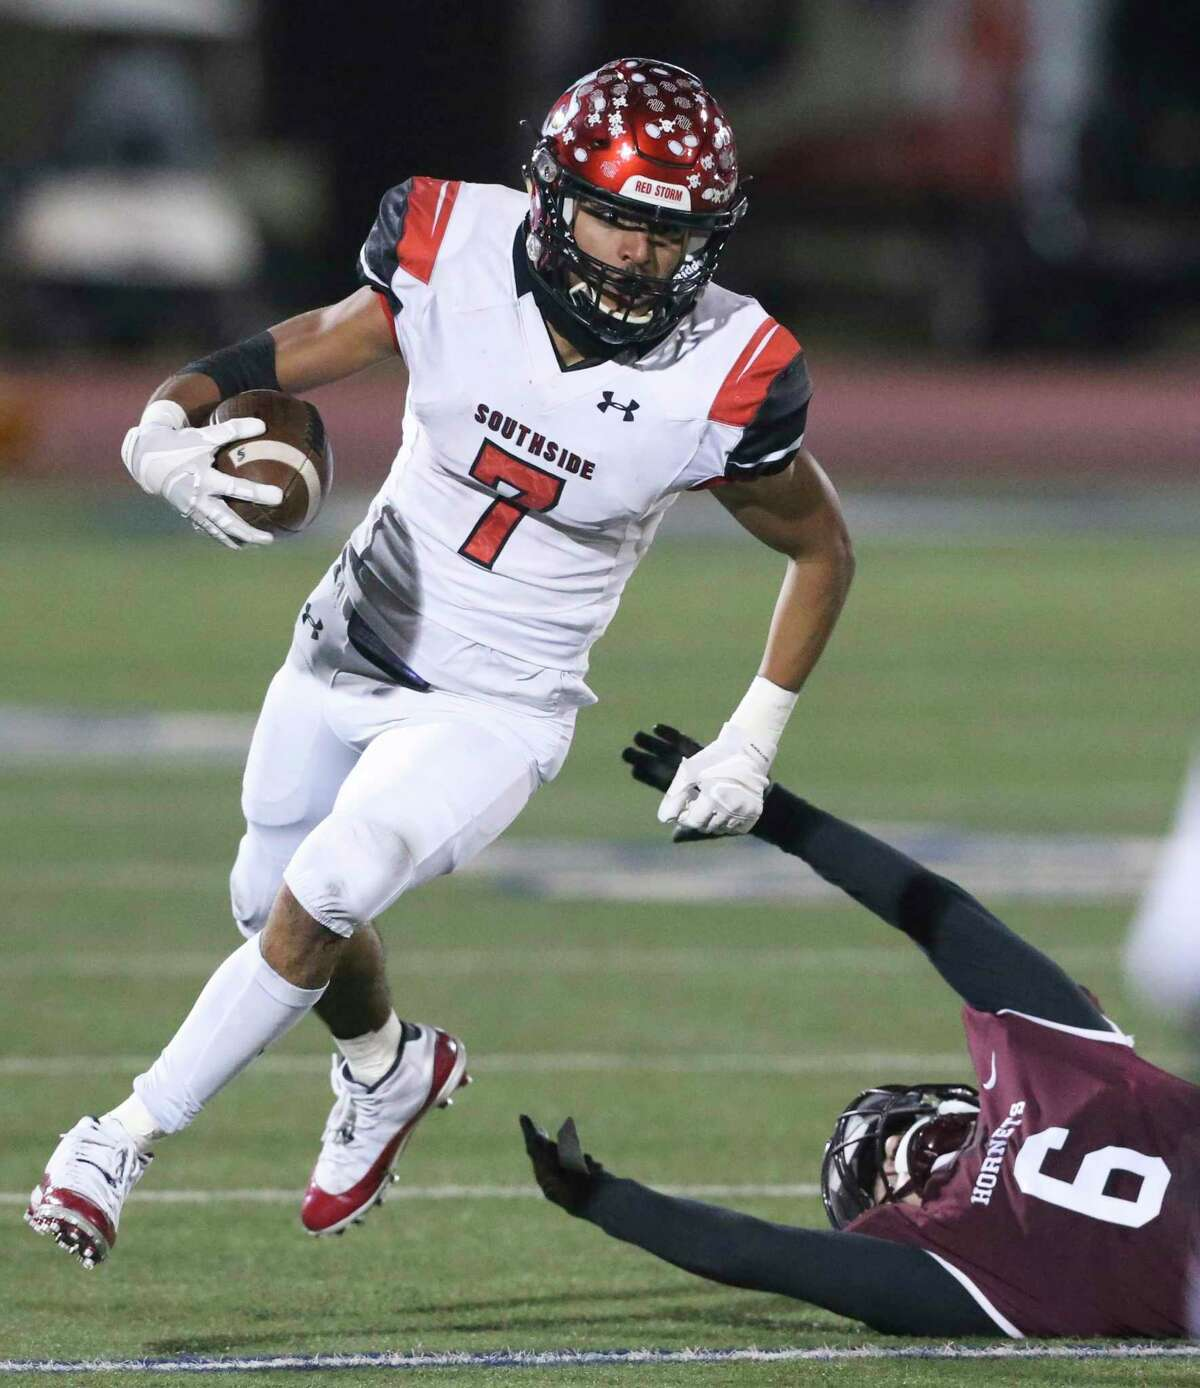 Caleb Camarillo leaves atackler reaching as he gets away as Southside plays Flour Bluff in high school football playoffs at Alamo Stadium on Dec. 17, 2020.